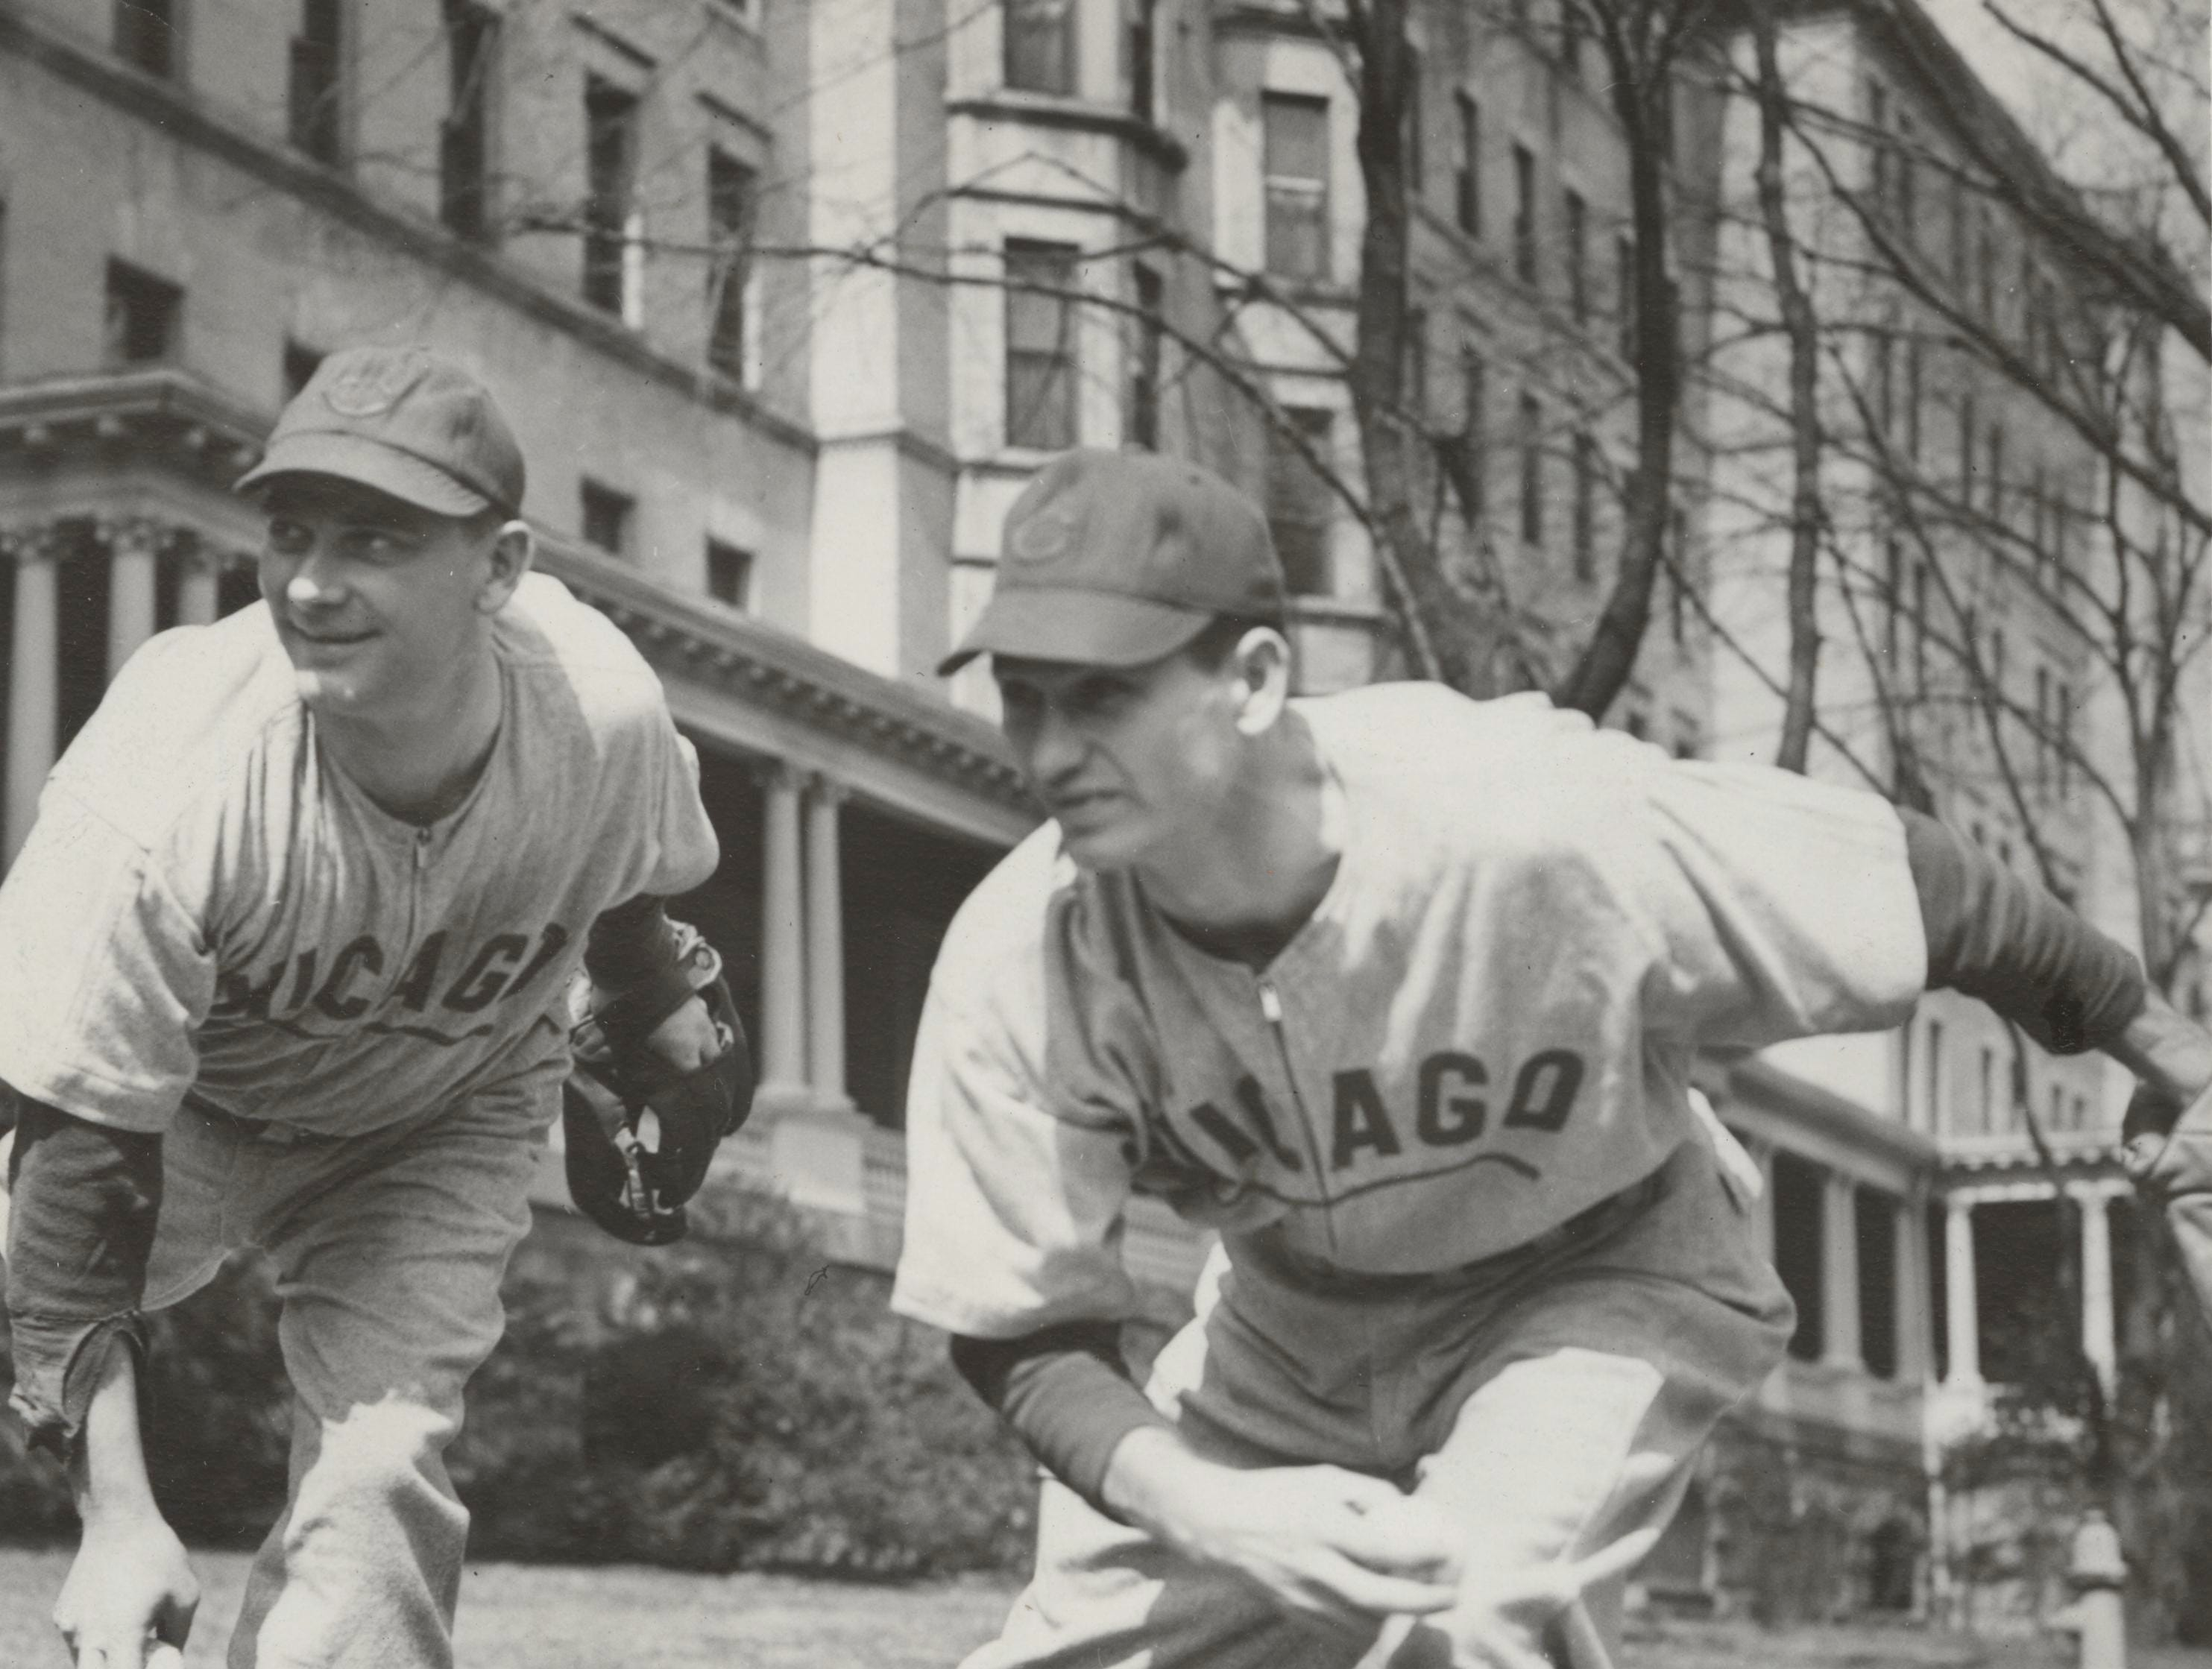 French Lick served as the spring training grounds for the Chicago Cubs and Chicago White Sox.